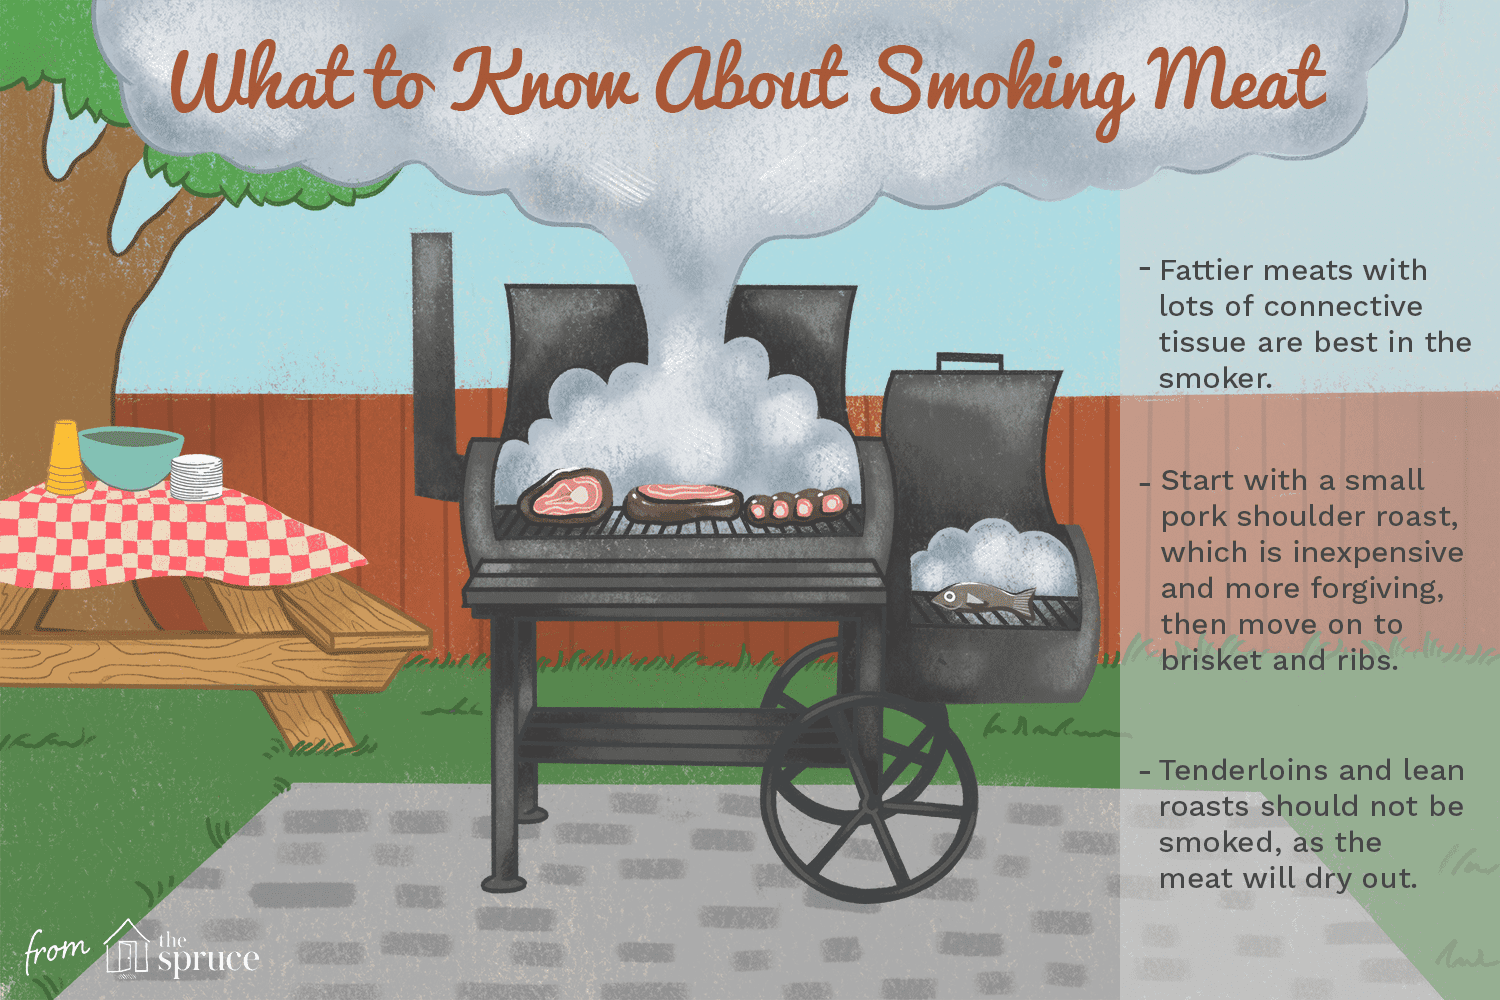 Best meats for the smoker